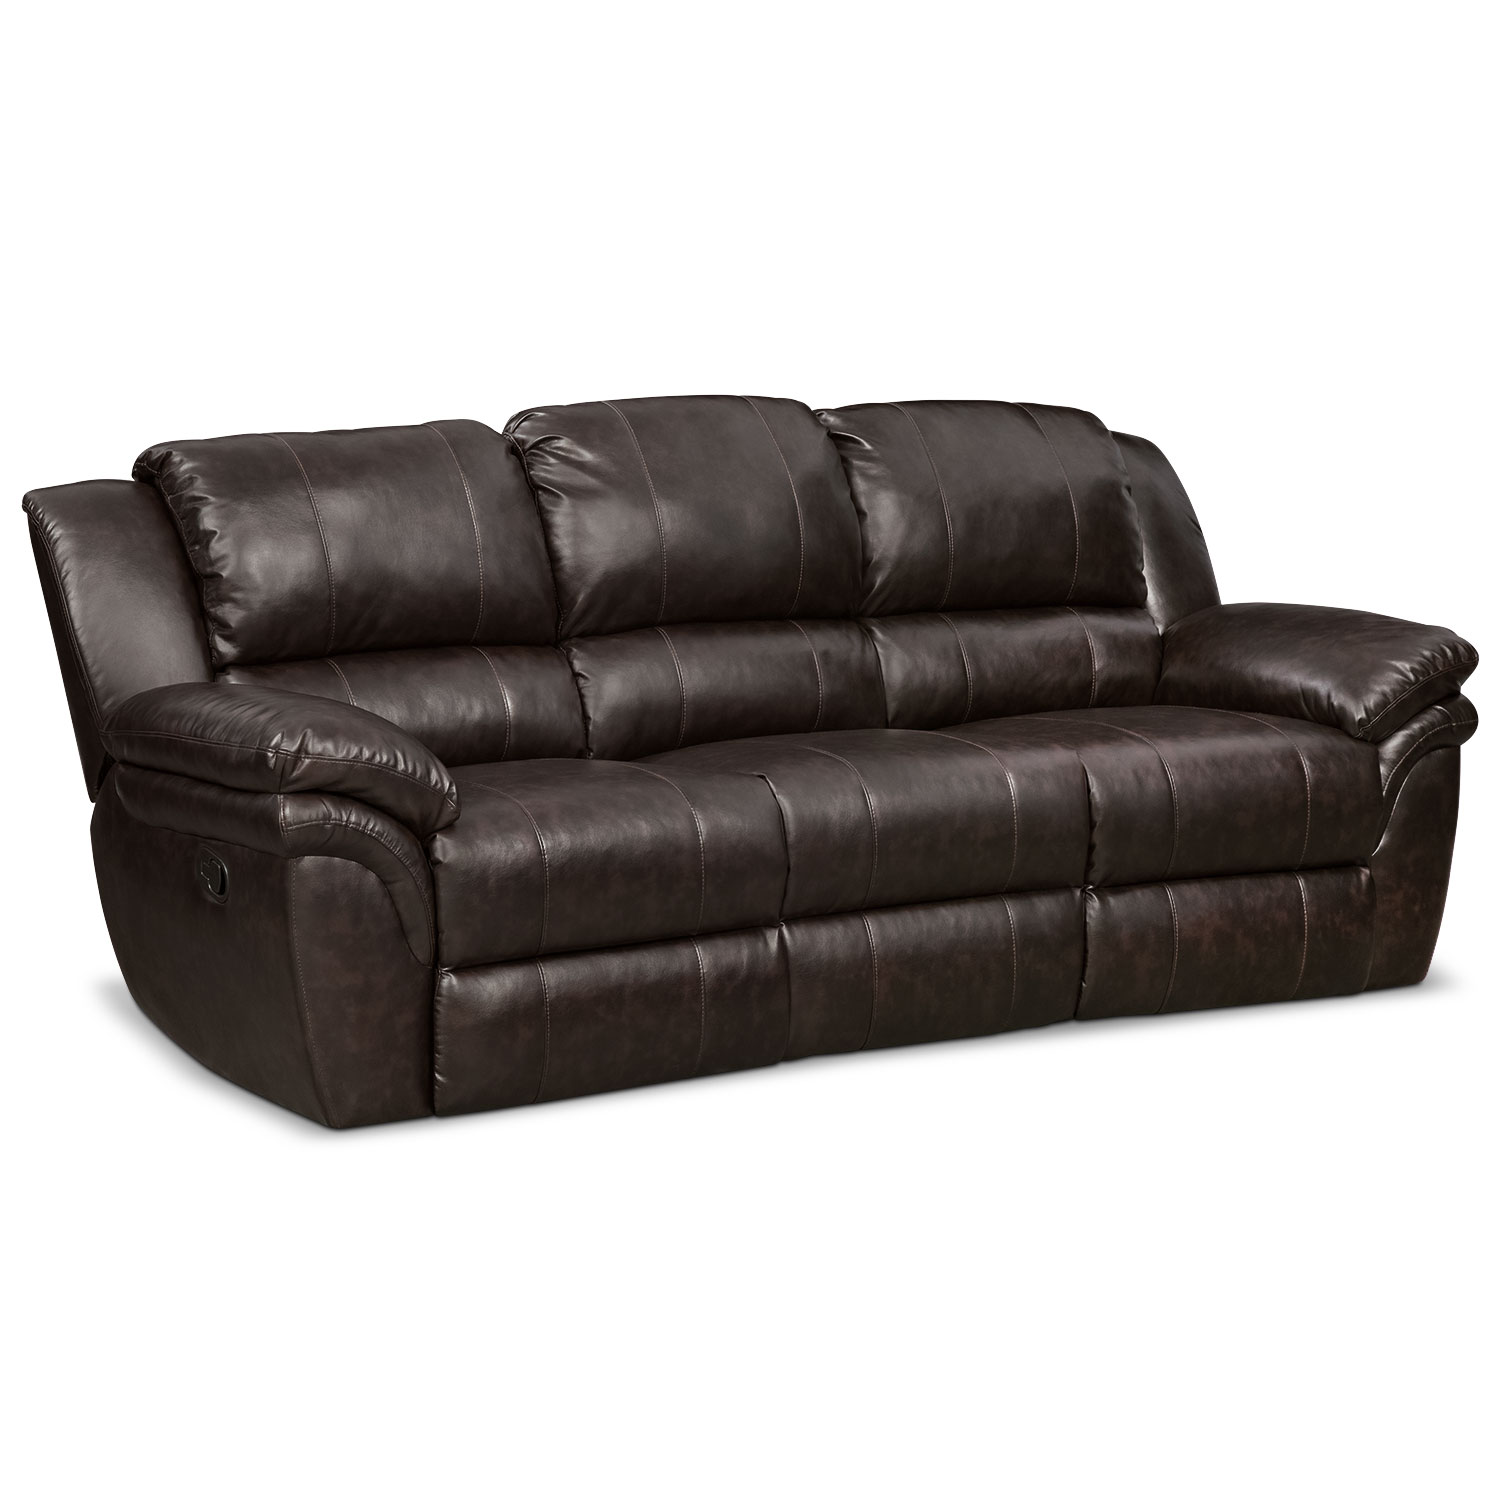 Aldo Manual Dual Reclining Sofa Loveseat Free Recliner Brown American Signature Furniture